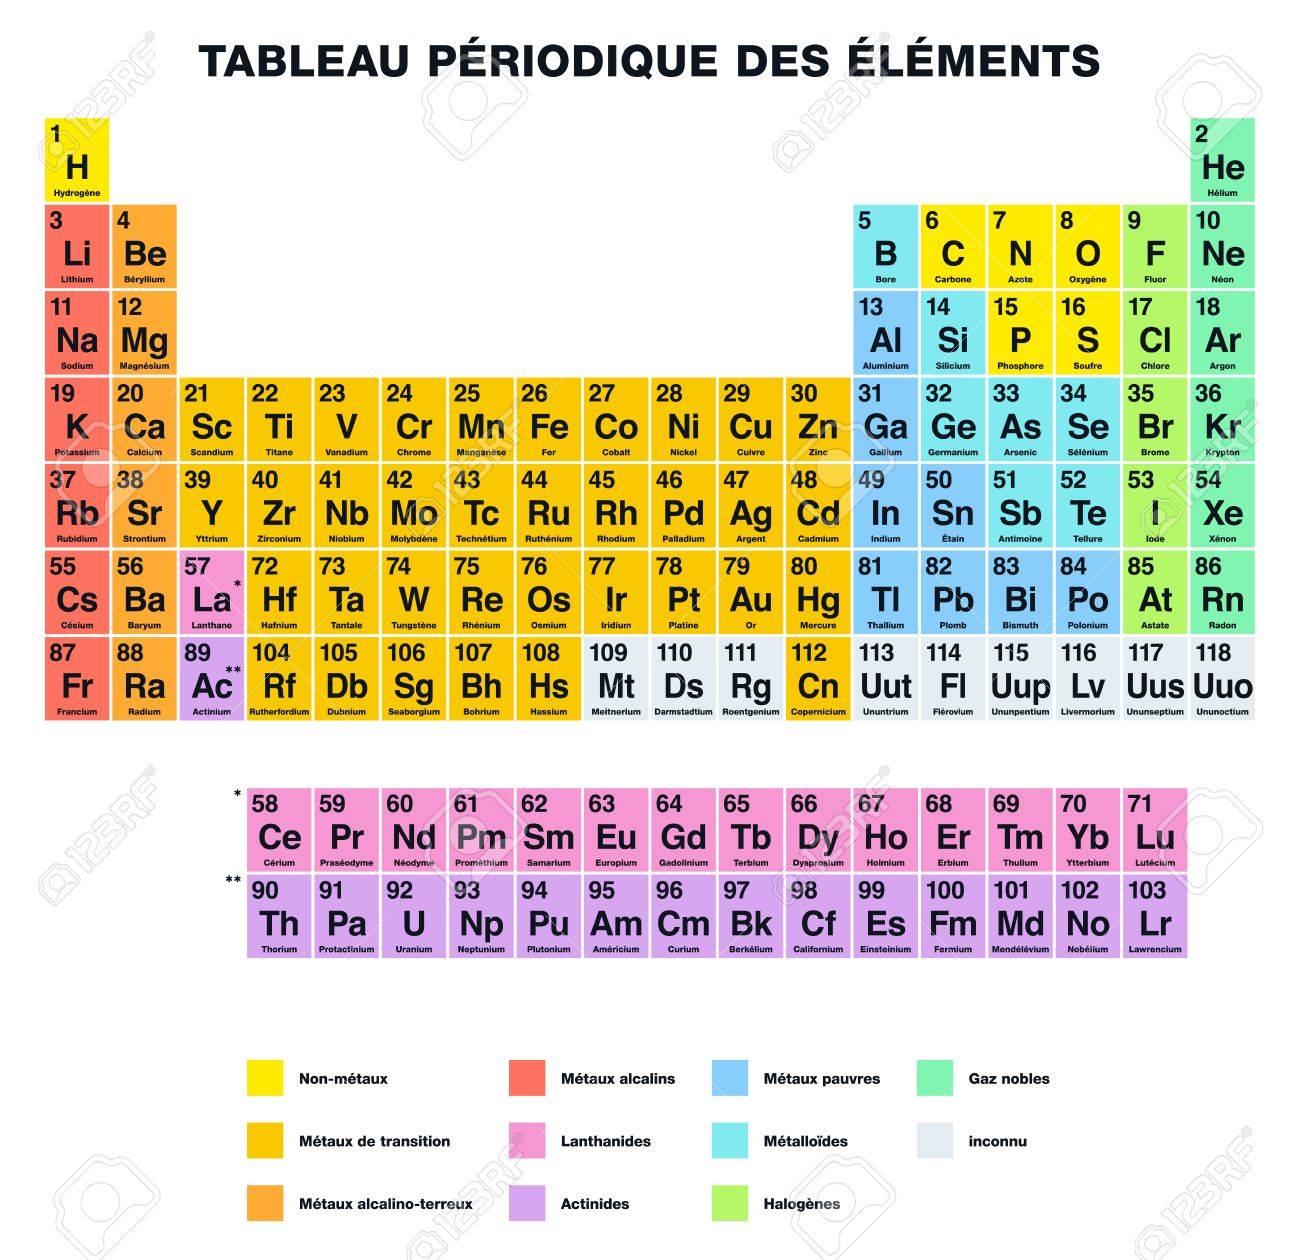 Periodic Table Of The Elements FRENCH Labeling. Tabular Arrangement Of  Chemical Elements With Their Atomic